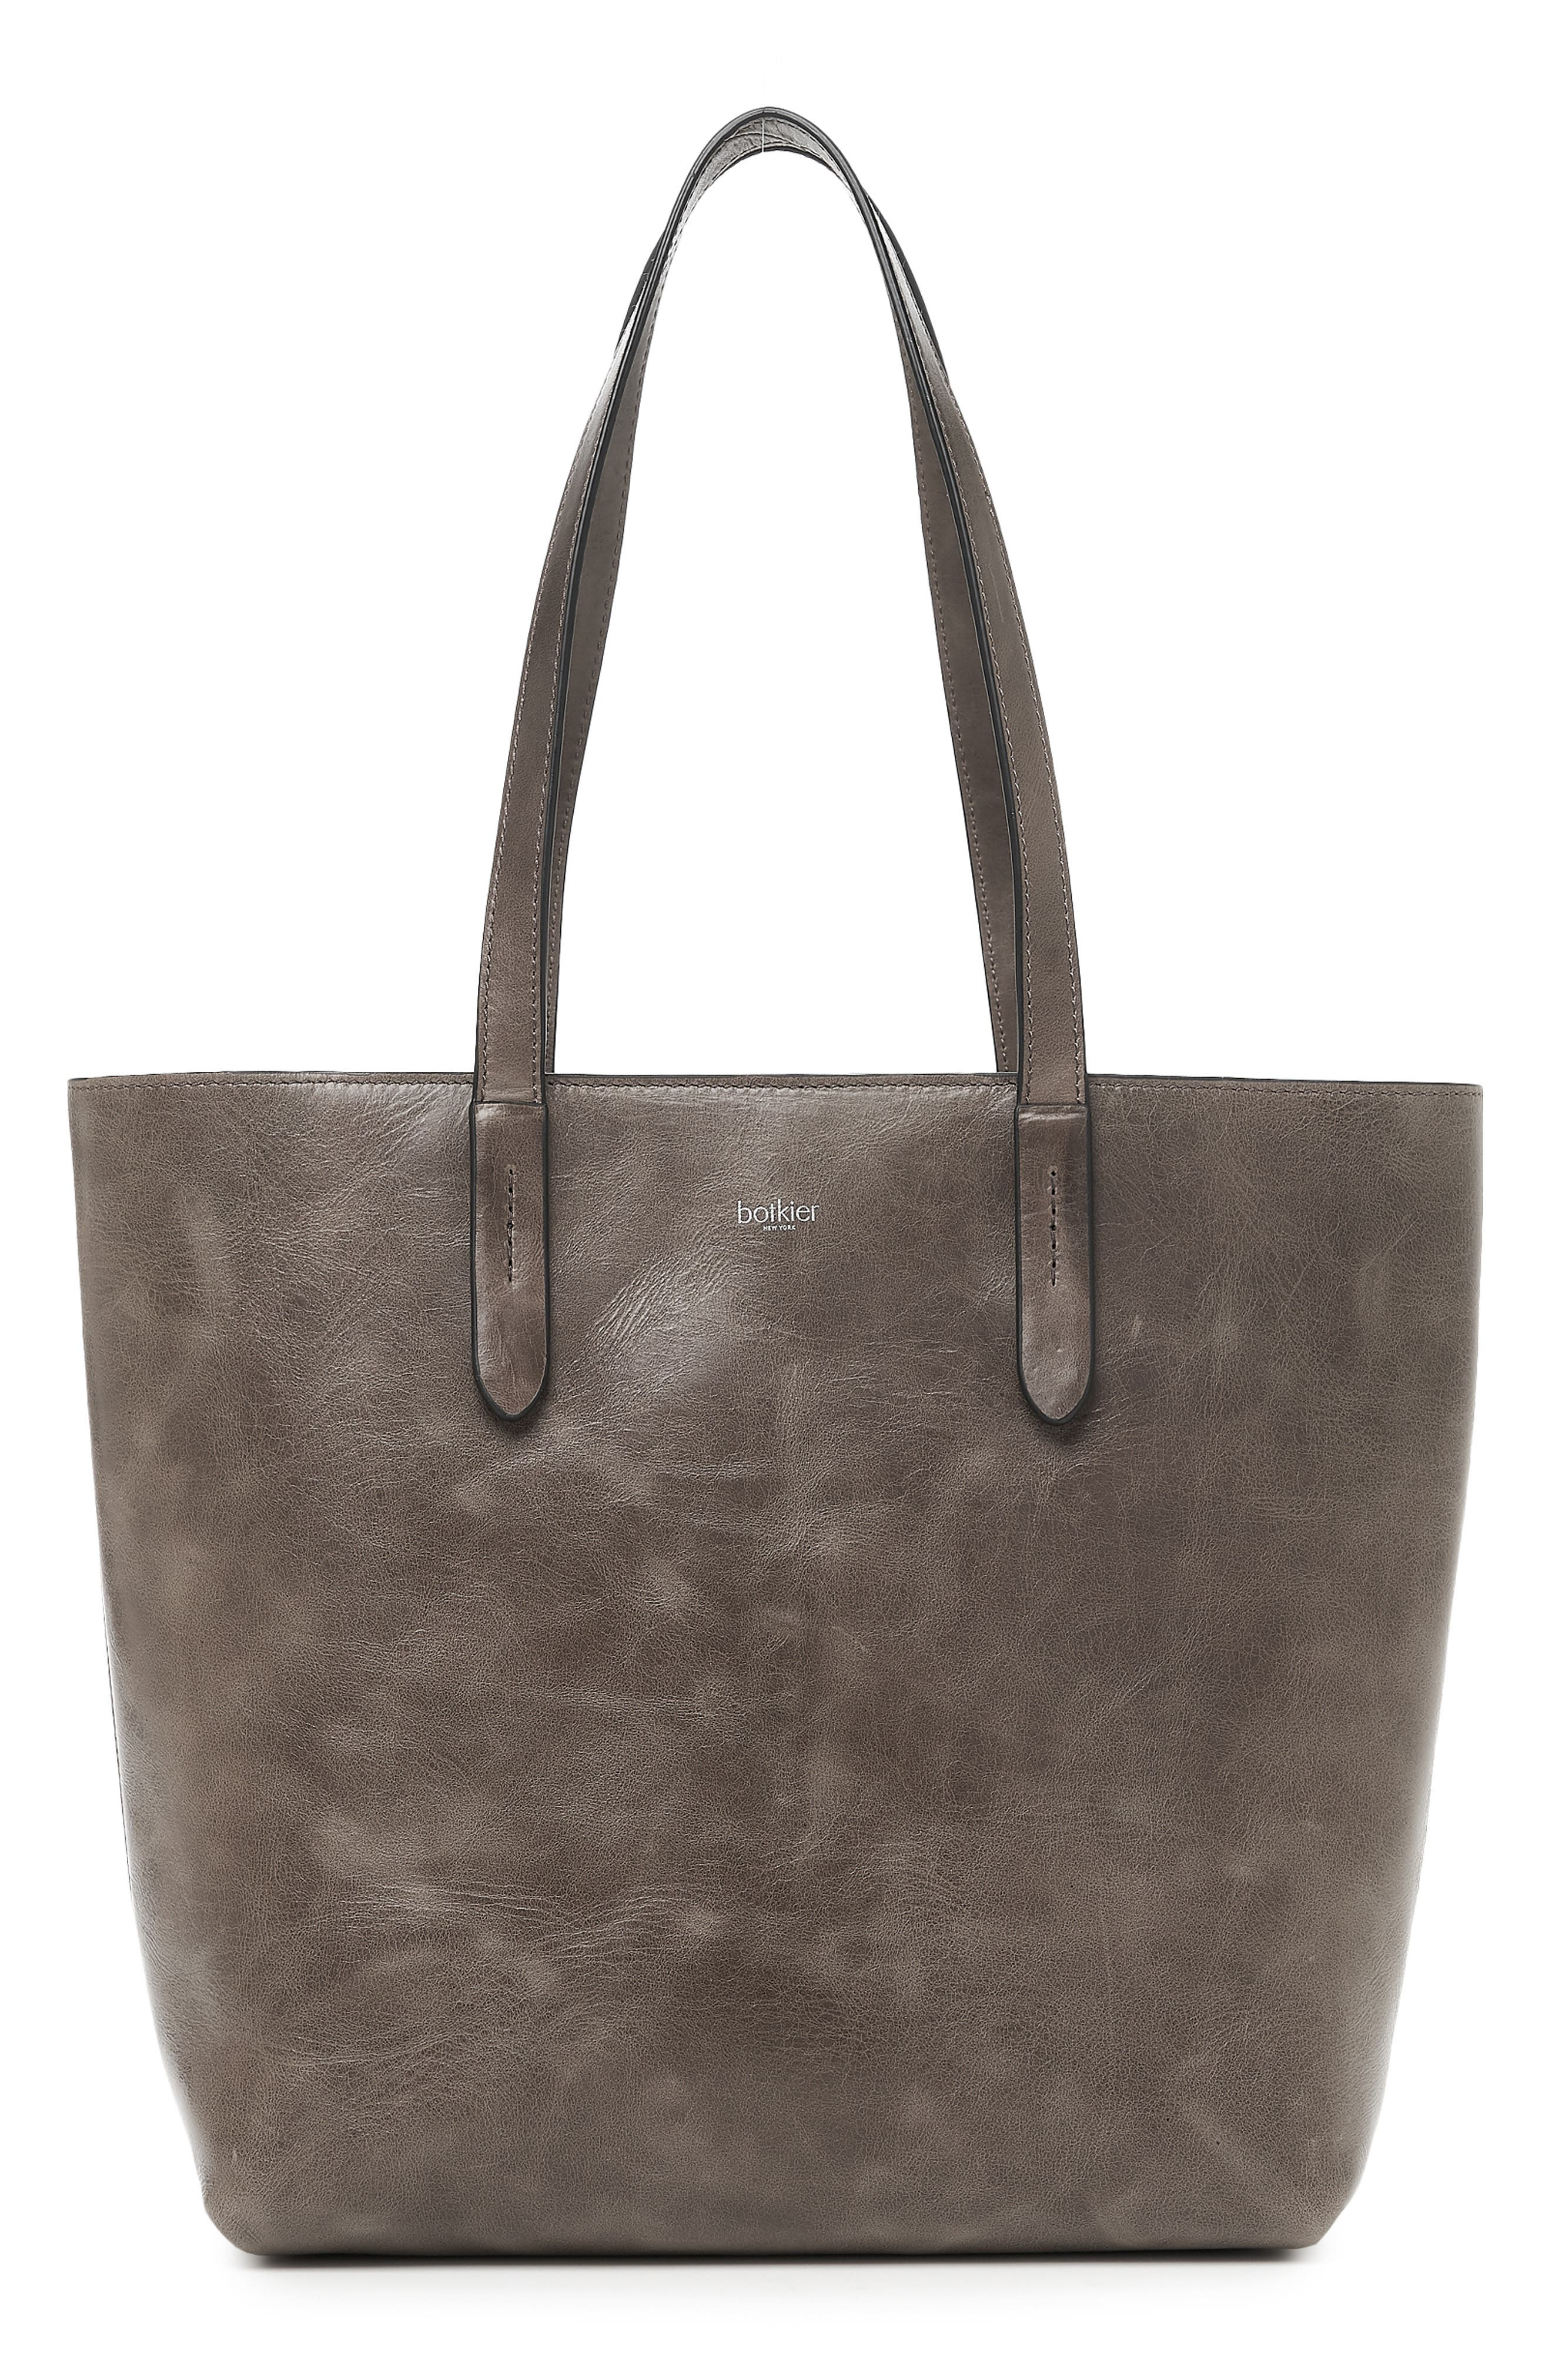 BOTKIER, Highline Leather Tote, Main thumbnail 1, color, WINTER GREY